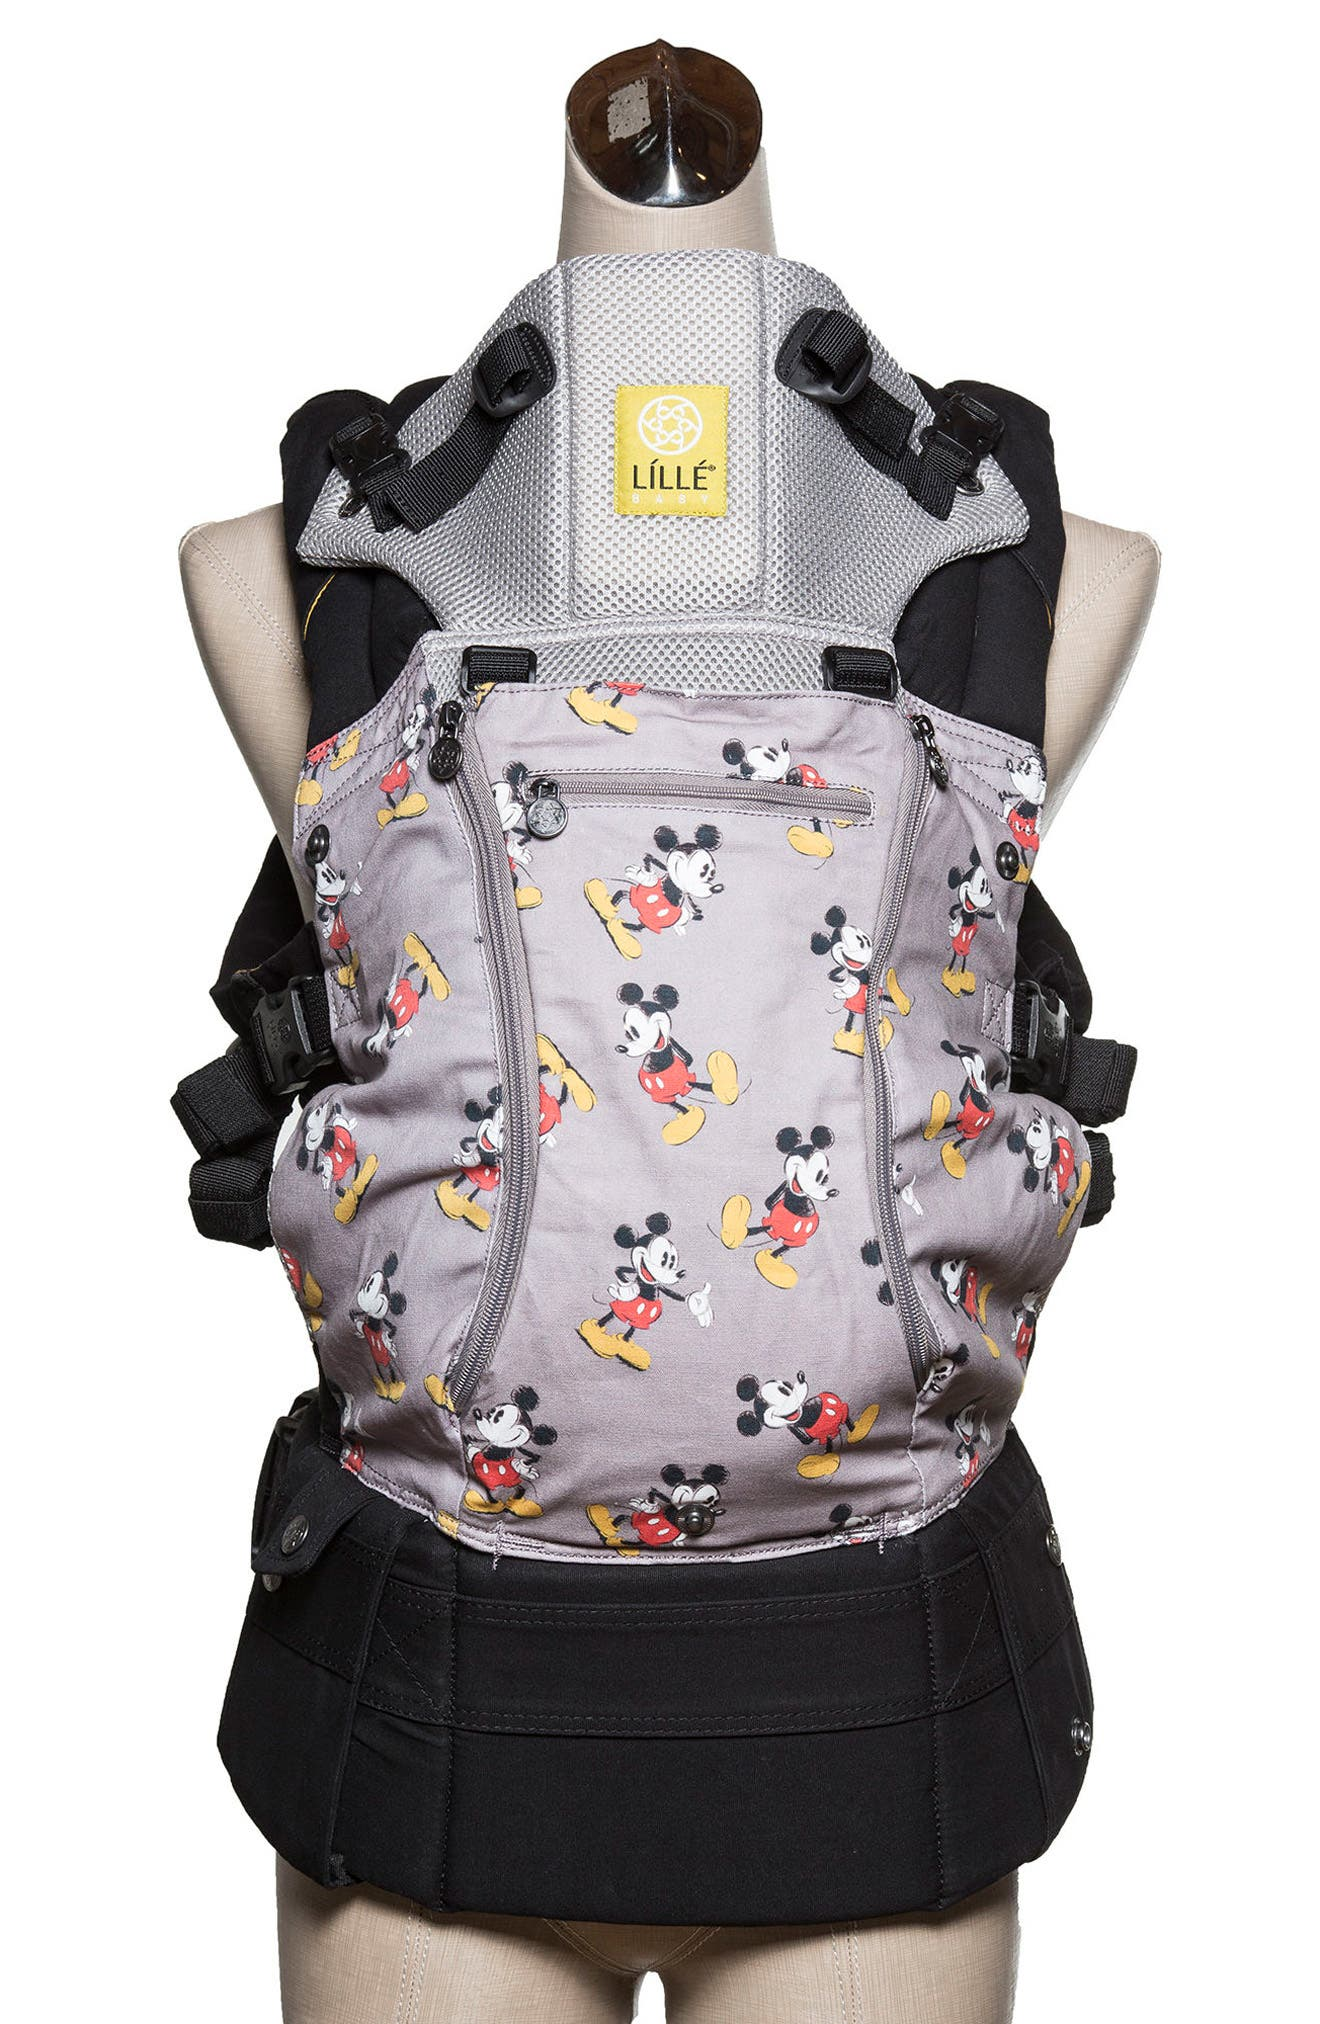 x Disney<sup>®</sup> Complete Airflow - Mickey Mouse Classic Baby Carrier,                             Main thumbnail 1, color,                             BLACK